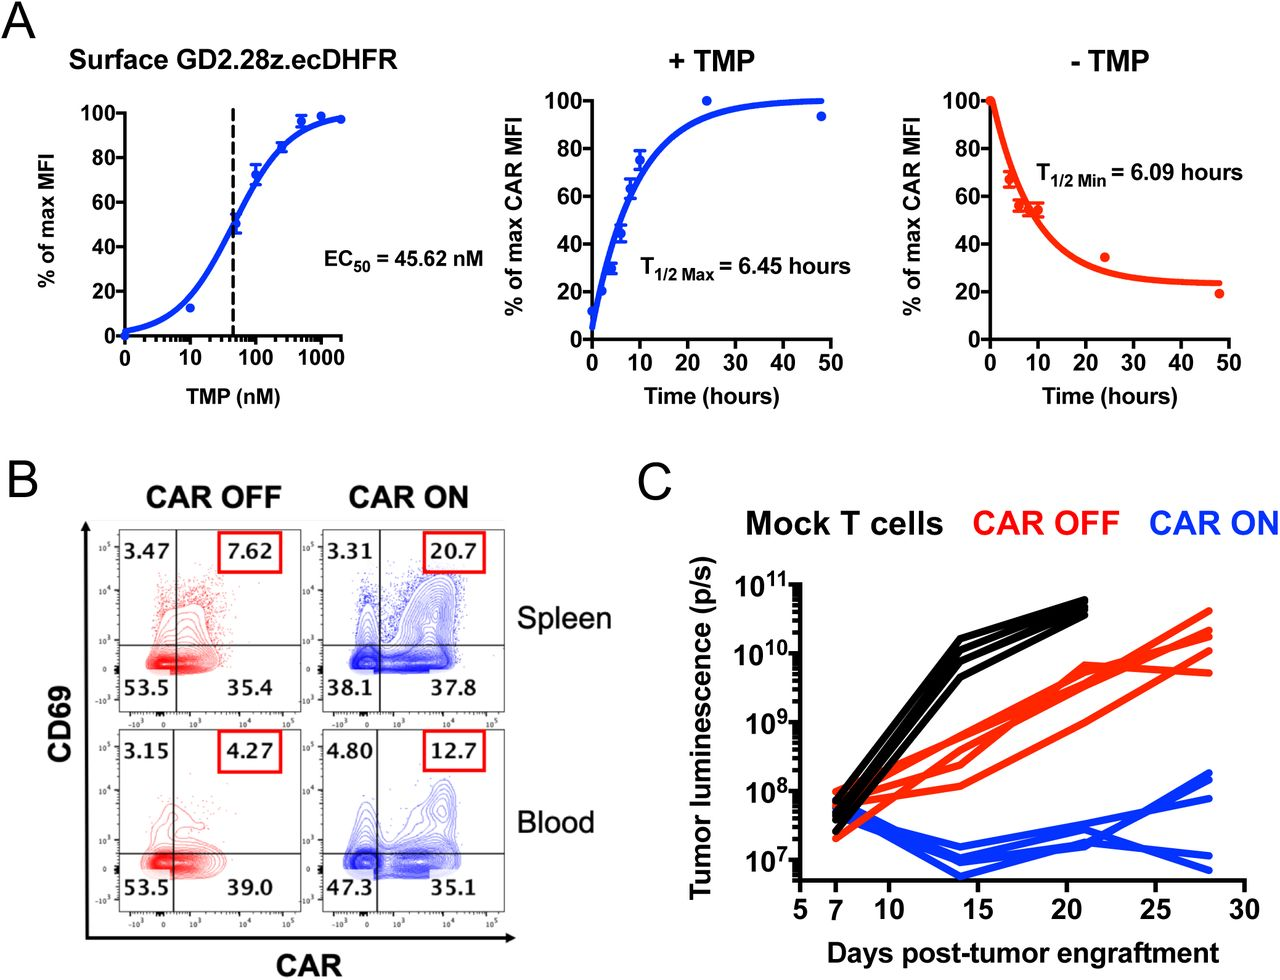 A GD2-targeting CAR fused to an ecDHFR destabilizing domain exhibits rapid ON/OFF kinetics and drug-dependent, analog control of expression and function in vivo . Related to Figure 1 . A) CAR-T cells were stained with 1A7 anti-CAR idiotype antibody and analyzed via flow cytometry. Dose-dependent control (left) and ON/OFF kinetics (middle, right) were demonstrated via trimethoprim (TMP). CAR MFI was used to generate non-linear dose-response curves. Error bars represent mean ± SEM of 3 individual donors. B) 1×10 6 Nalm6-GD2 leukemia cells were engrafted in mice. On days 5-7 post-engraftment, mice were dosed with vehicle (water, CAR OFF) or 200mg/kg trimethoprim (TMP, CAR ON) once daily. On day 7 post-engraftment, 1×10 7 GD2.28 ζ .ecDHFR CAR-T cells were infused. 24 hours after CAR-T cell infusion, peripheral blood and spleens were harvested for flow cytometry analyses. Contour plots demonstrate a TMP-dependent increase in co-expression of CAR and the activation marker CD69 in CAR ON mice compared CAR OFF mice. Representative mouse from n=7 total mice from 2 independent experiments. C) 1×10 6 Nalm6-GD2 leukemia cells were engrafted in mice at day 0 and 2×10 6 GD2.28 ζ .ecDHFR CAR-T cells expanded in vitro in the absence of TMP for 15 days were infused IV on day 7 post-engraftment. Mice were dosed 6 days per week with vehicle (CAR OFF) or 200mg/kg TMP (CAR ON). Bioluminescence imaging of the tumor indicates TMP-dependent anti-tumor activity in CAR ON mice compared to CAR OFF mice (n=5 mice/group). Representative experiment (also shown in Figure 1F-G ) from 3 individual experiments.